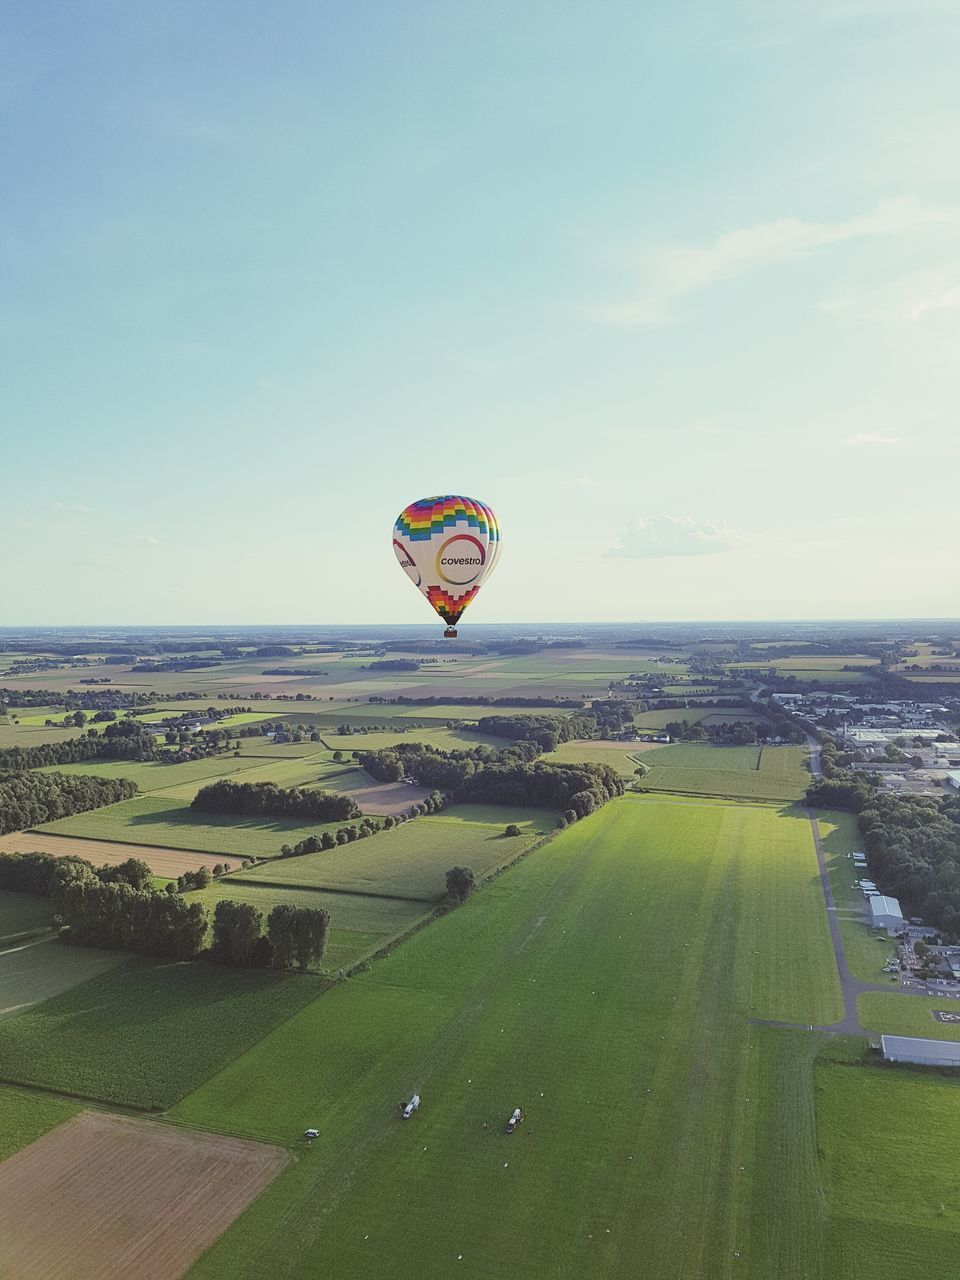 mid-air, flying, parachute, landscape, adventure, sky, transportation, extreme sports, sport, hot air balloon, day, outdoors, field, grass, leisure activity, scenics, nature, tree, architecture, building exterior, no people, beauty in nature, paragliding, ballooning festival